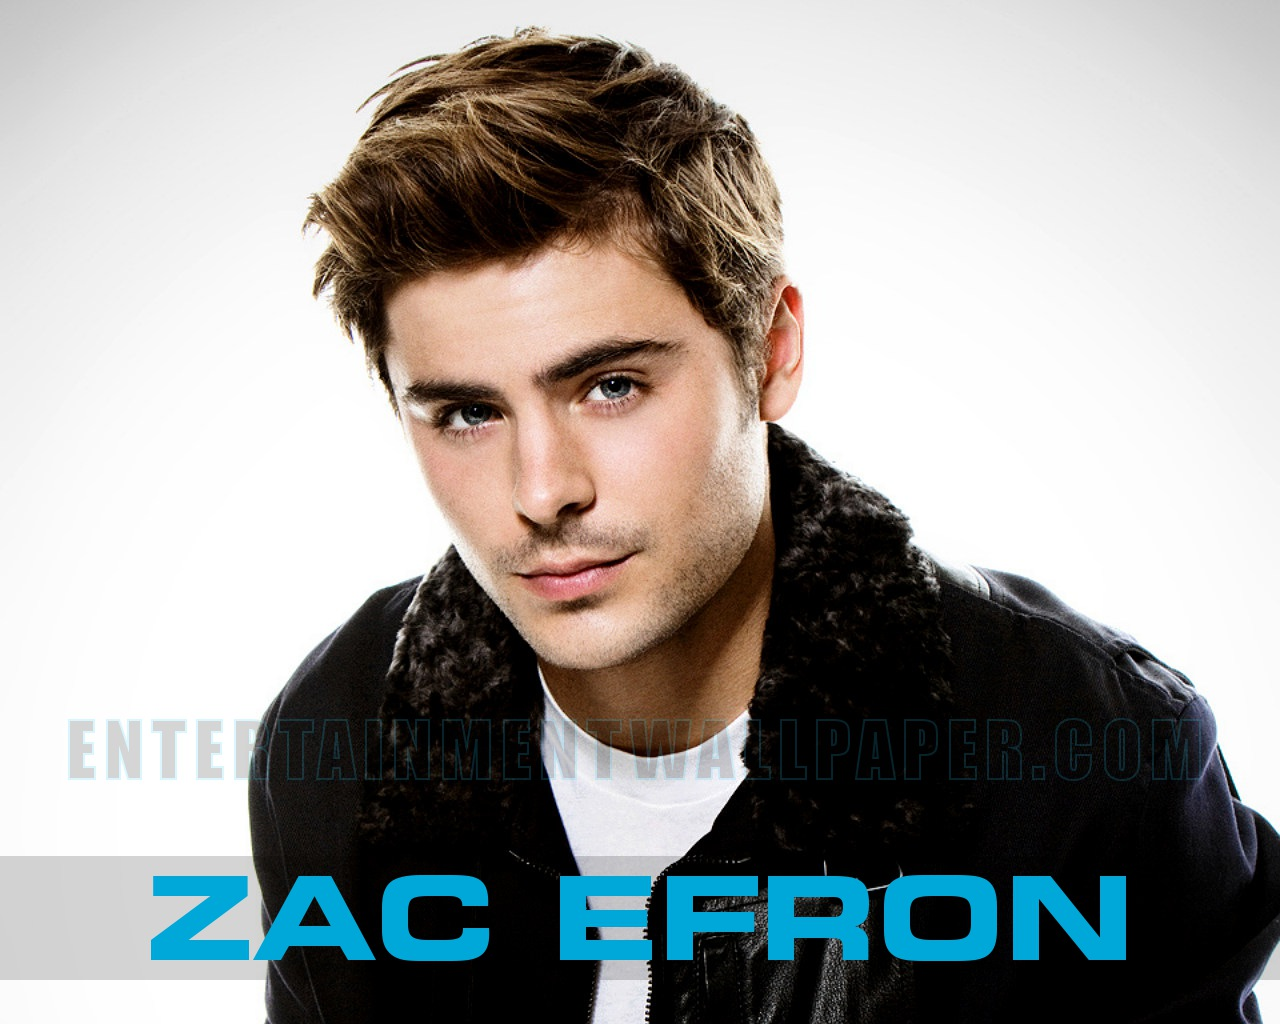 Zac Efron Hd Wallpaperdesktop